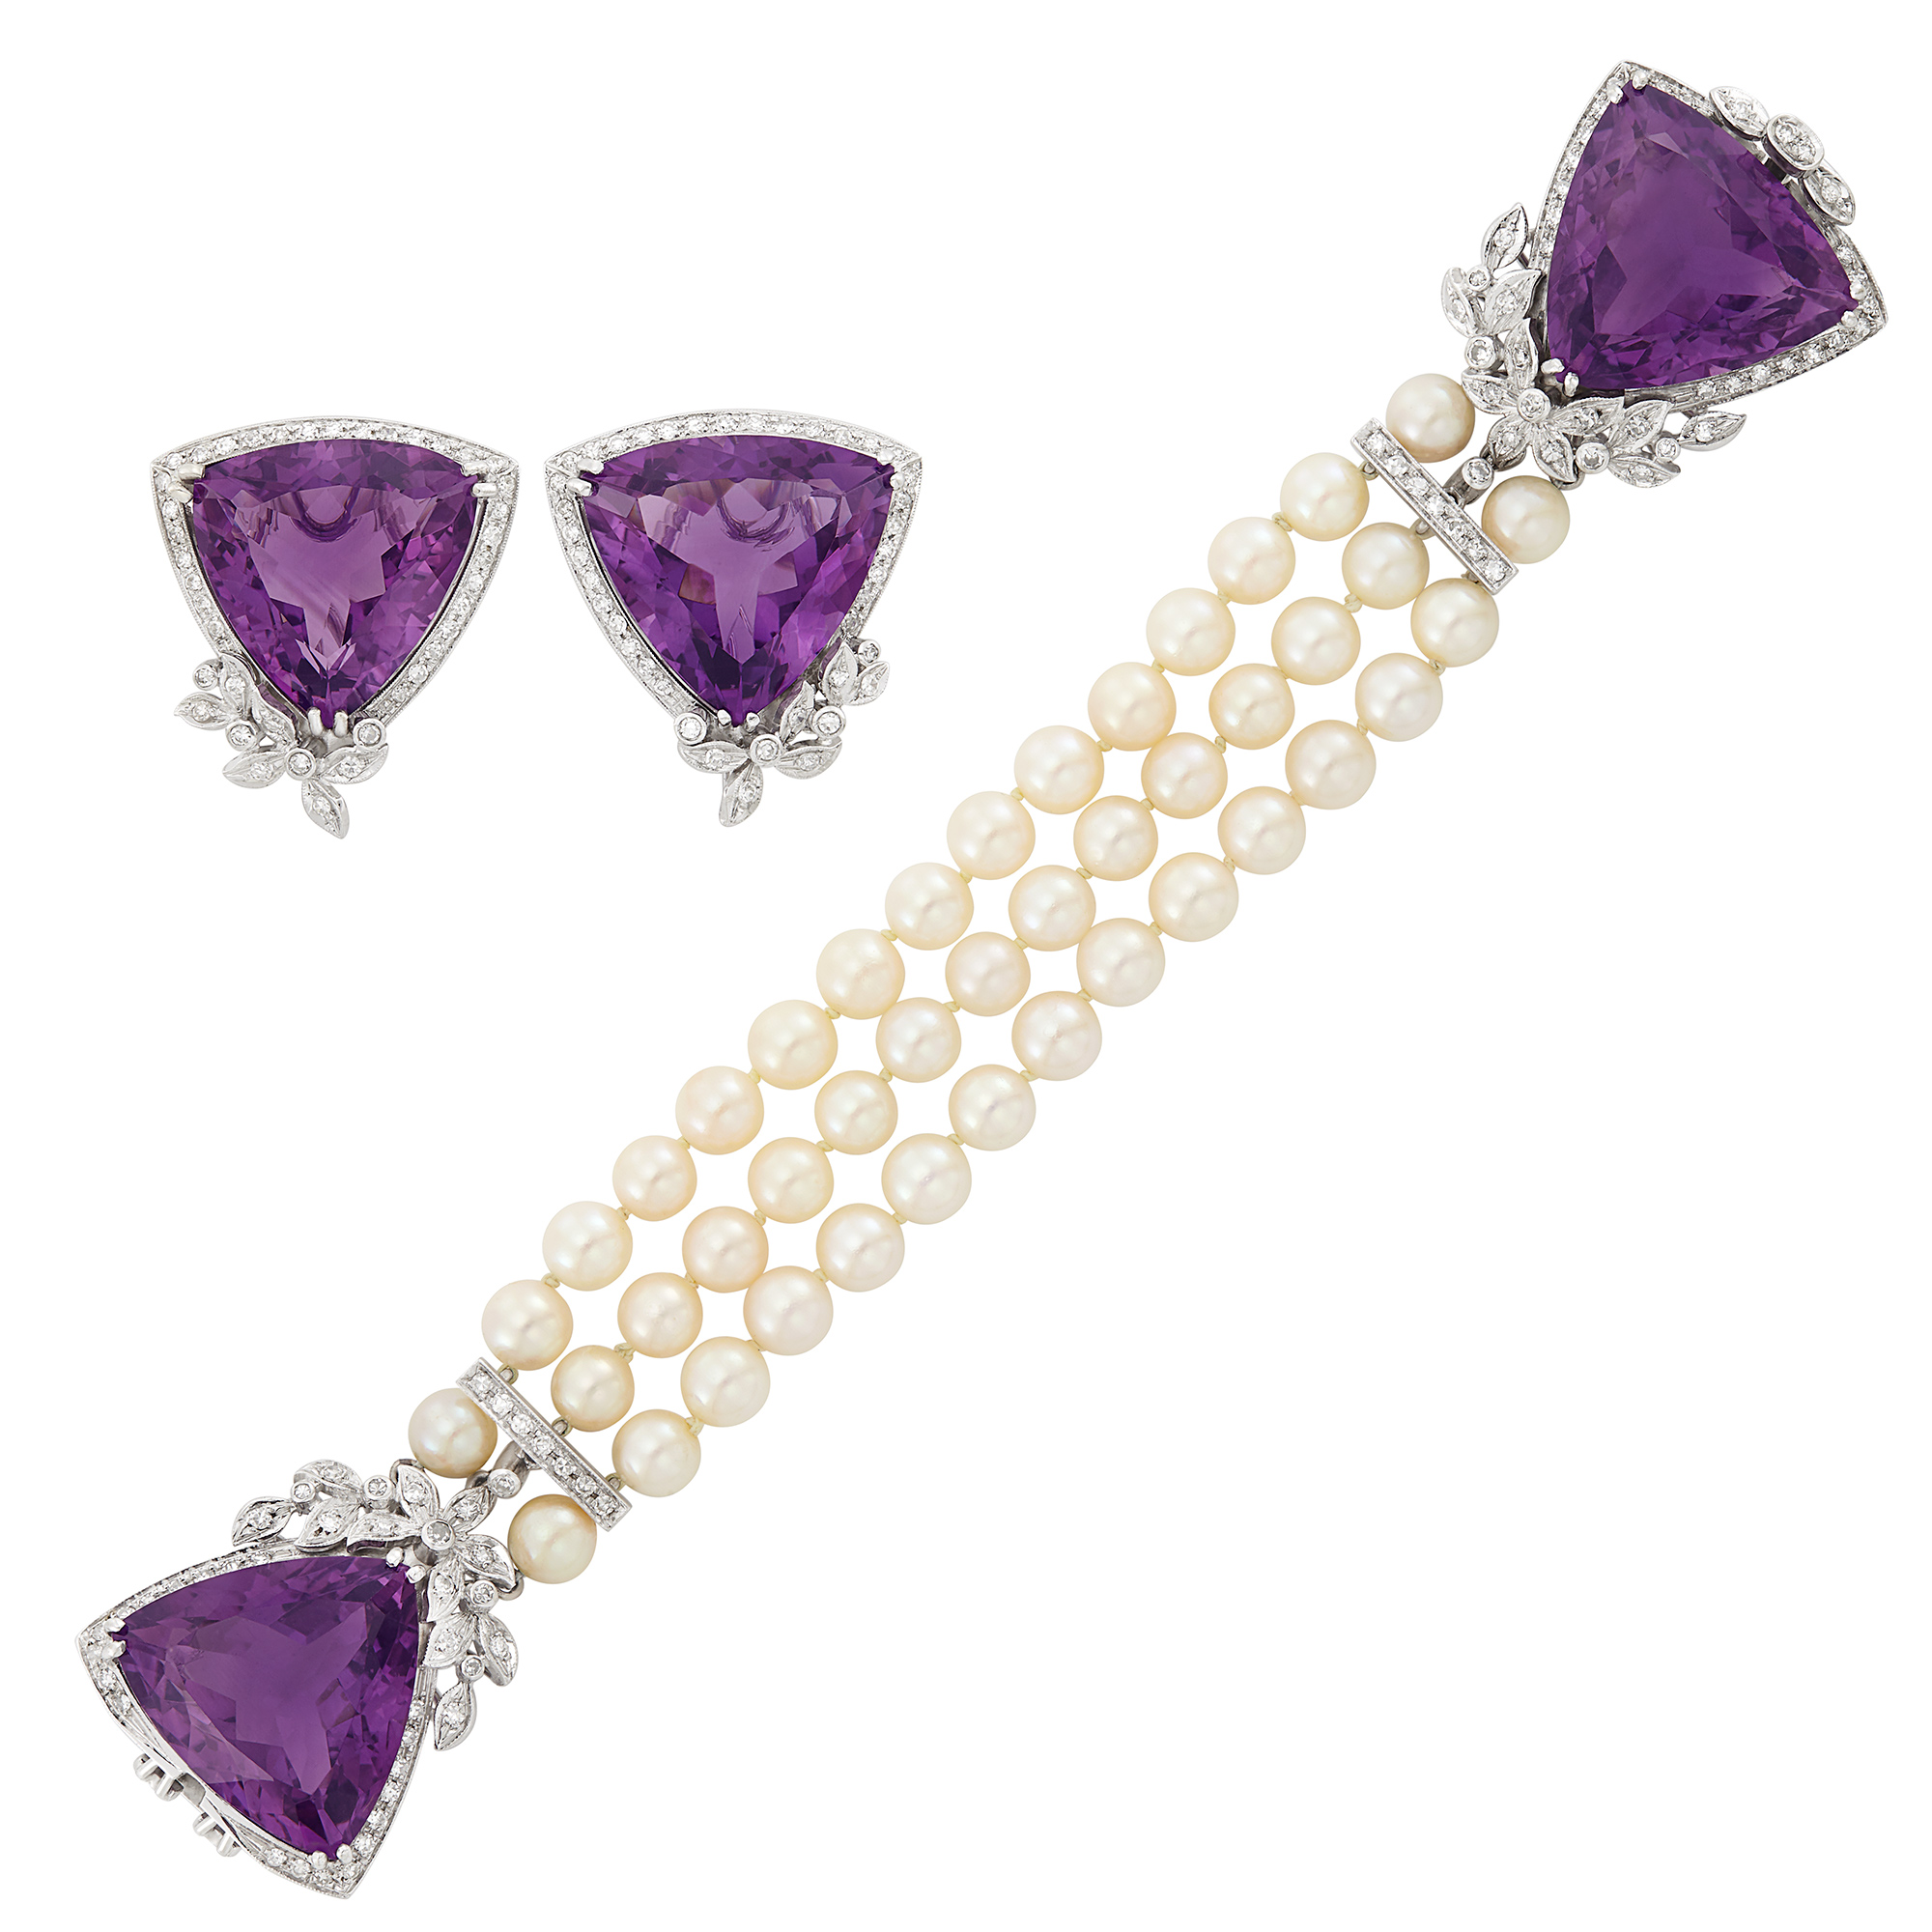 Lot image - Triple Strand Cultured Pearl, White Gold, Amethyst and Diamond Bracelet and Pair of Earclips